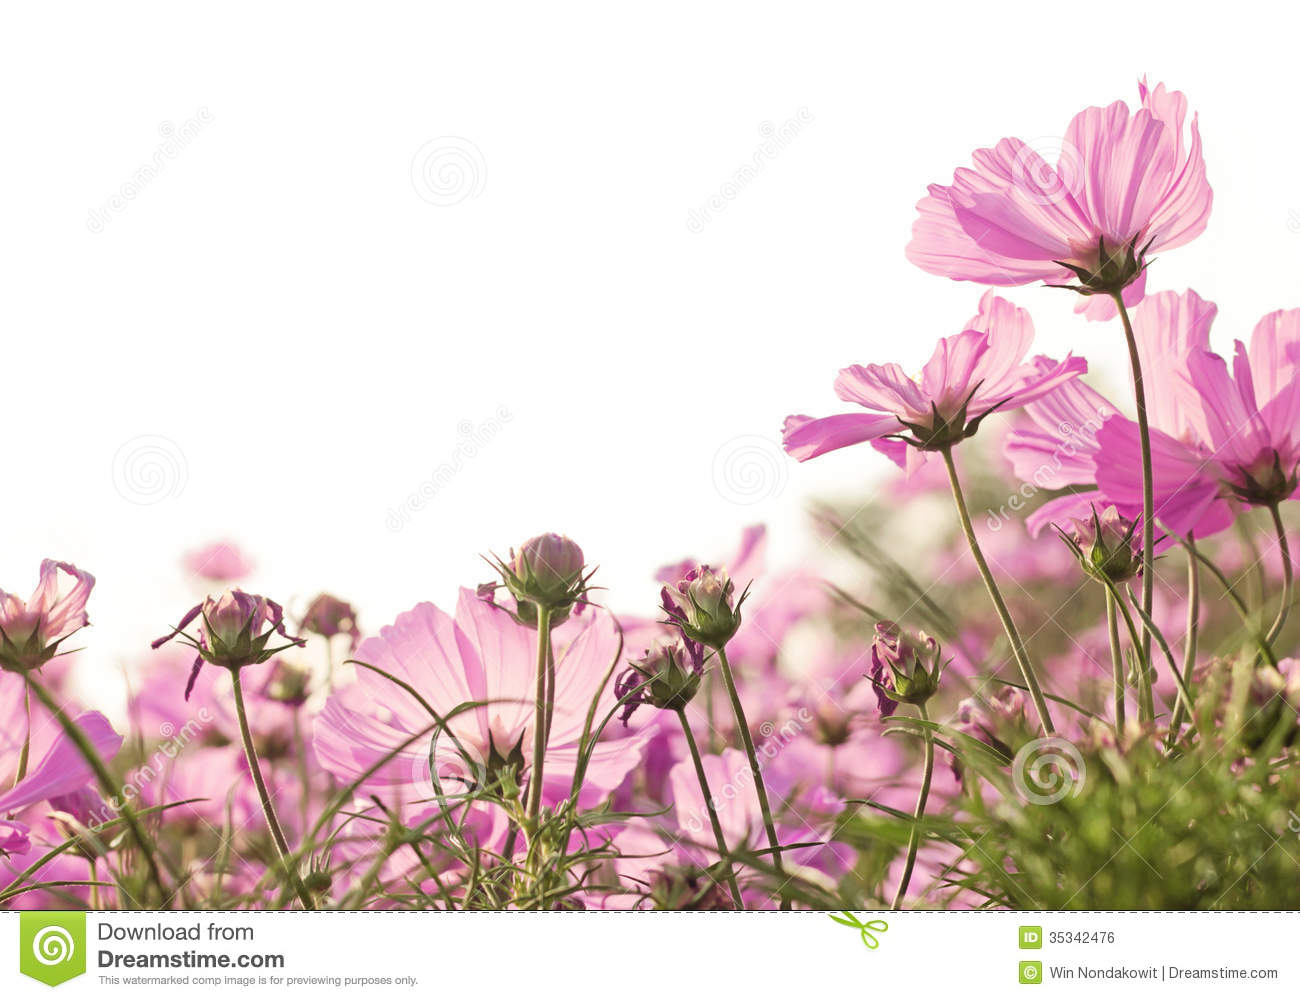 Girly Background Royalty Free Stock Photo: Pink Cosmos Flower Stock Photo. Image Of Cosmos, Petal